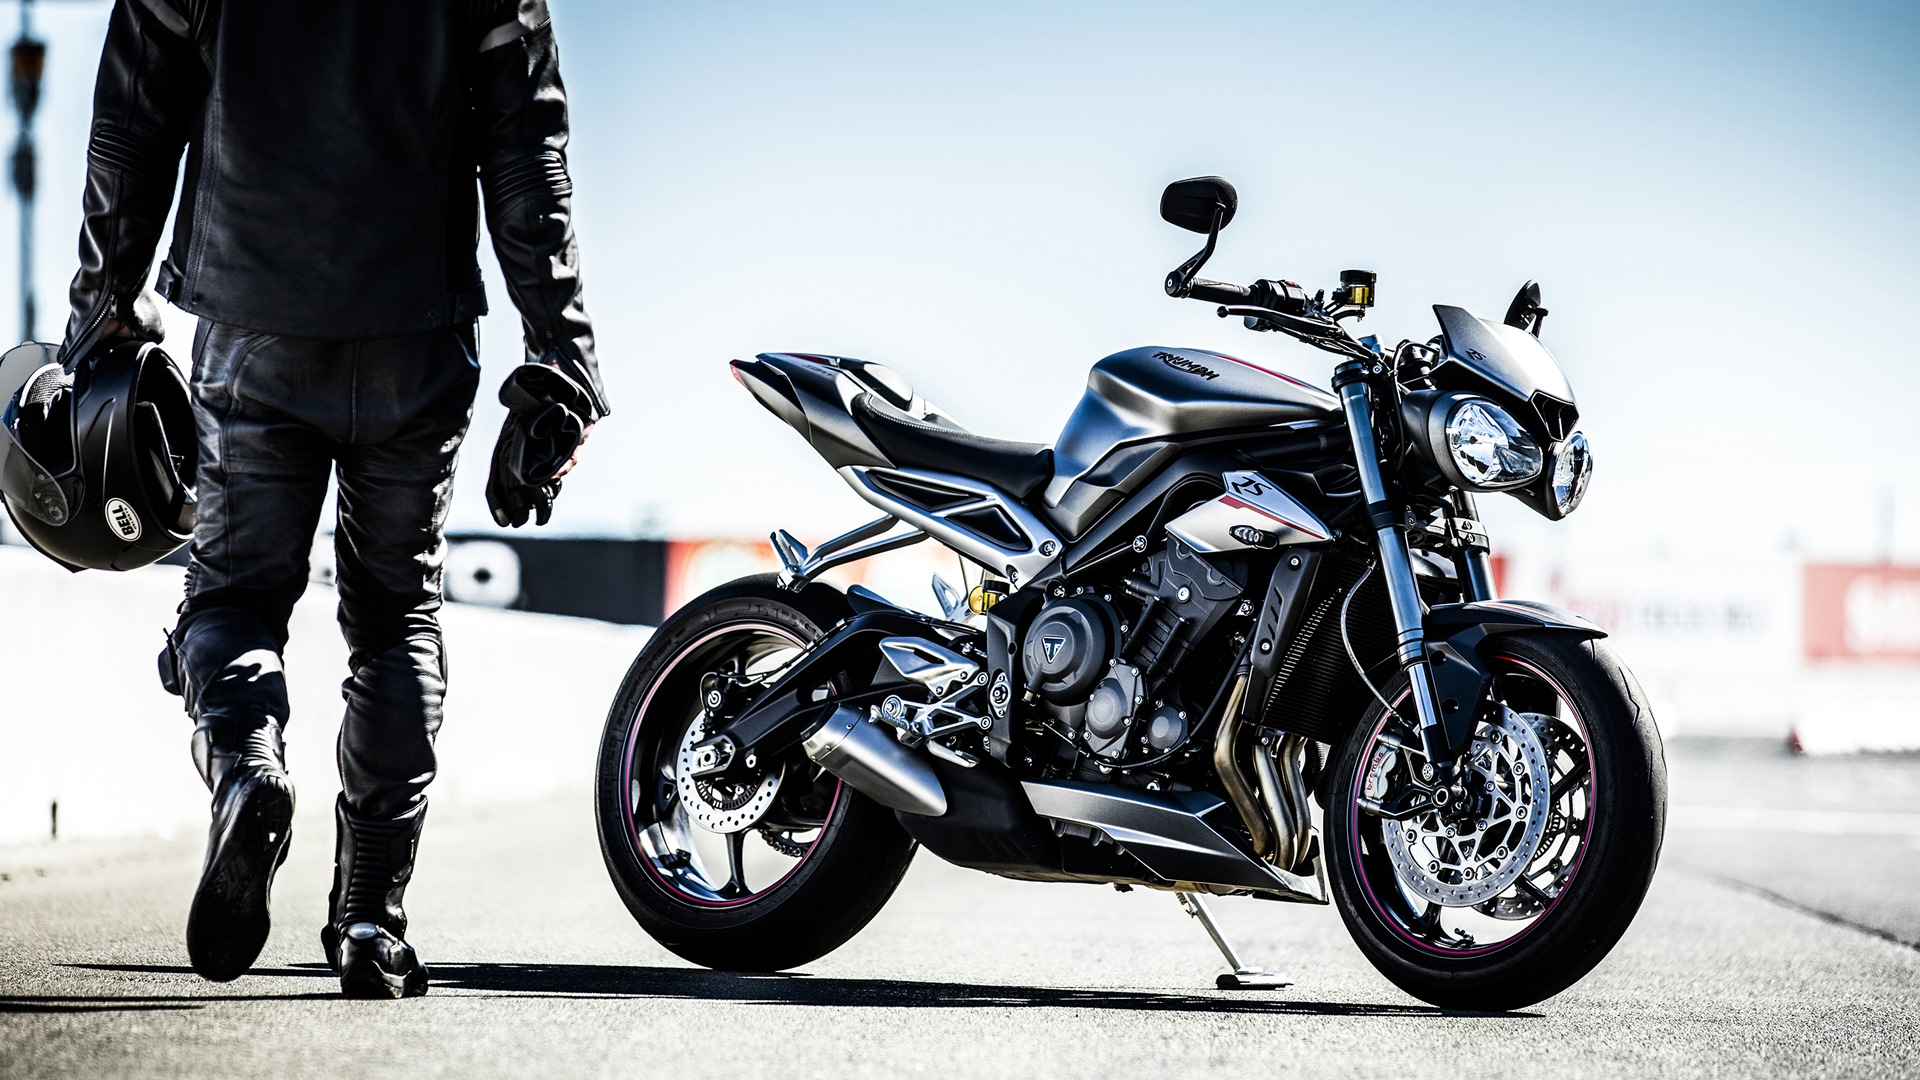 triumph street triple rs makes it to india at a price of rs lakh iamabiker. Black Bedroom Furniture Sets. Home Design Ideas